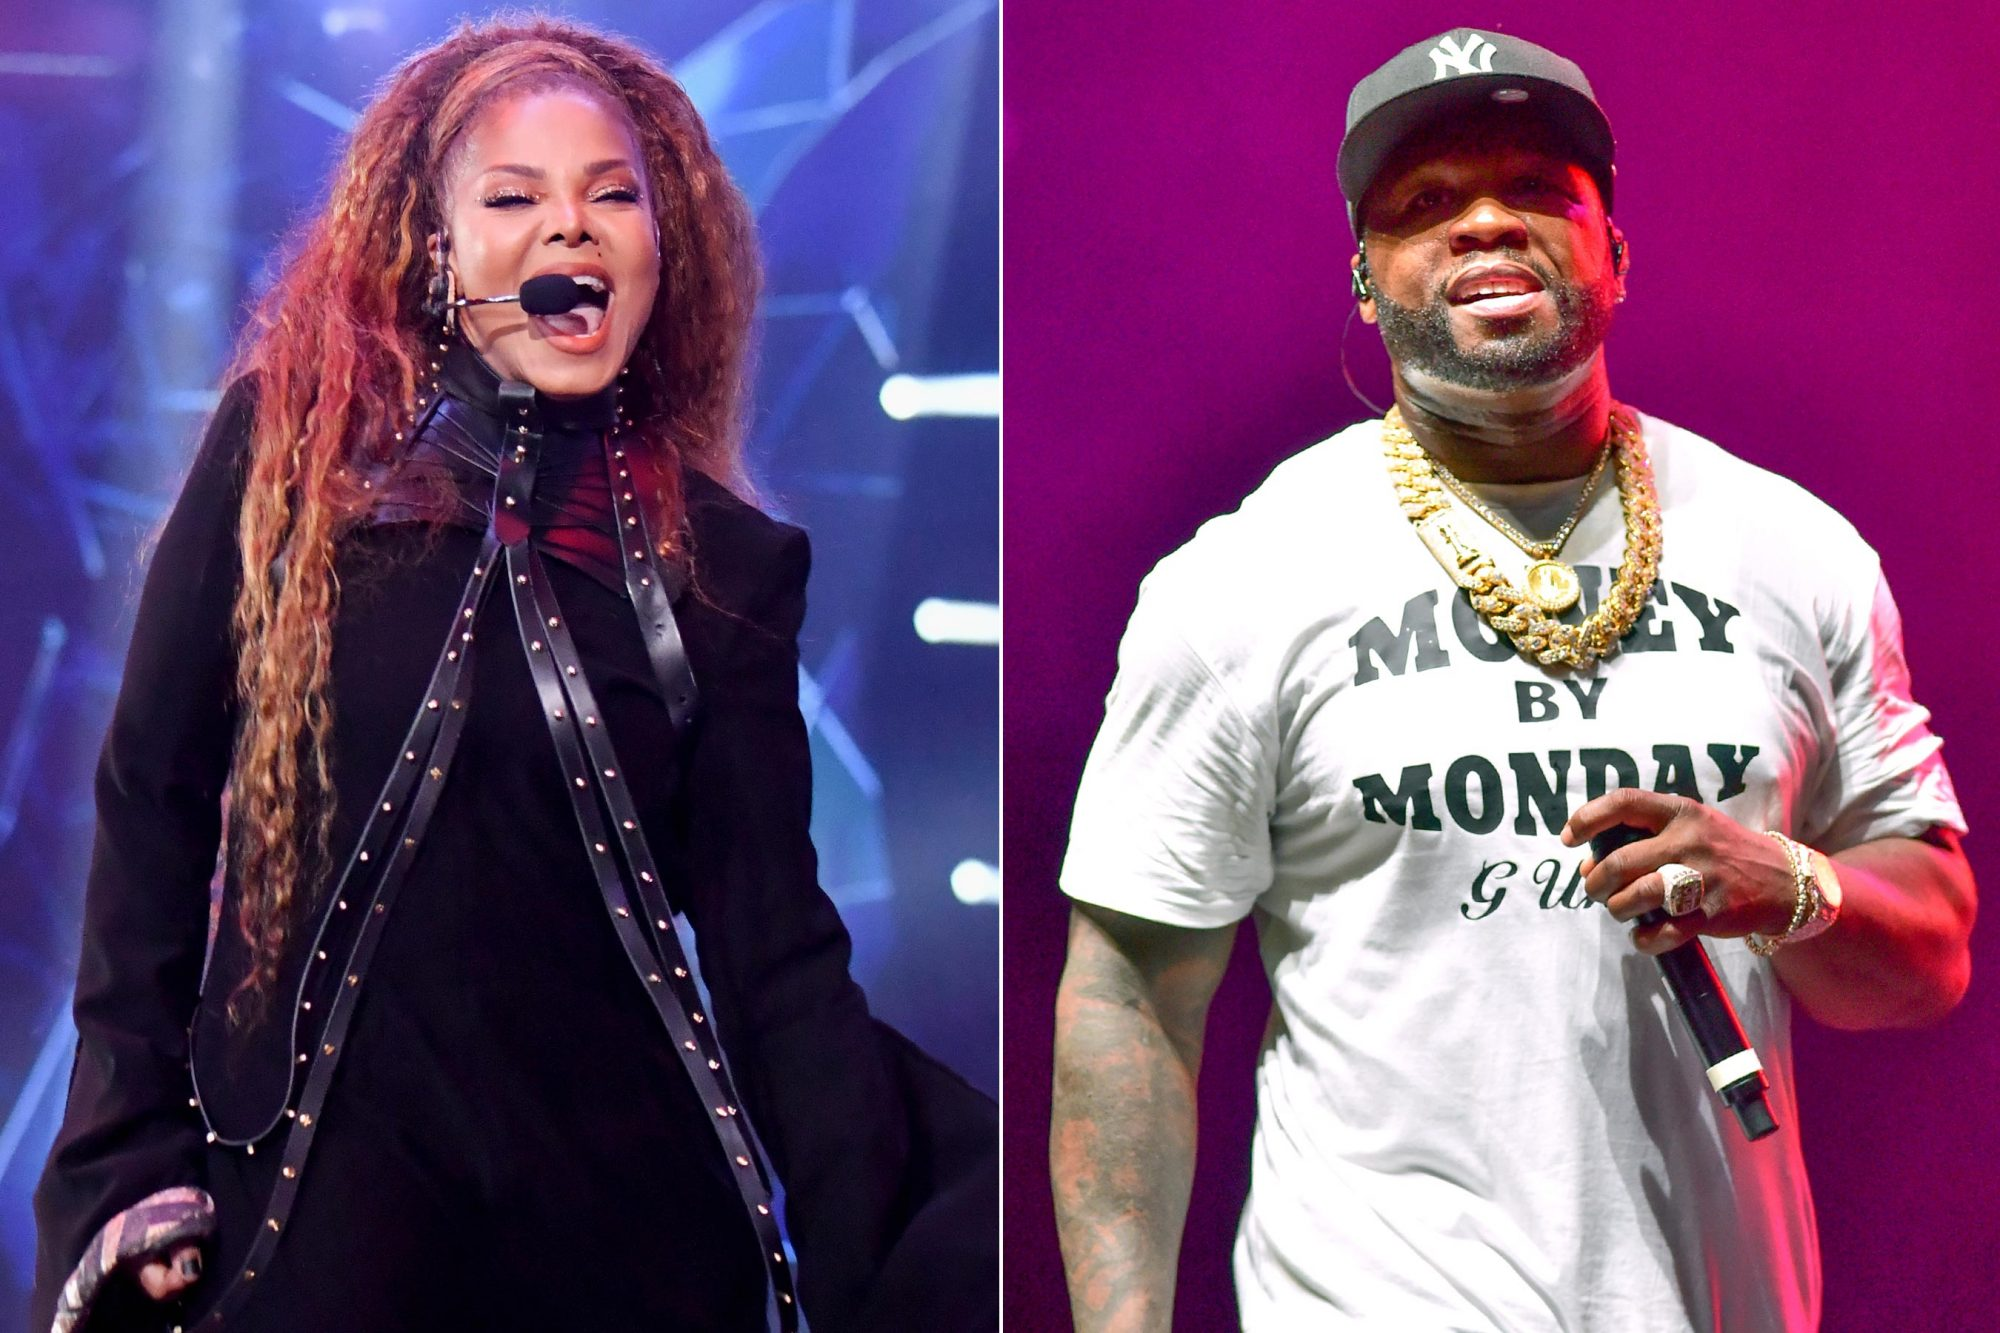 BILBAO, SPAIN - NOVEMBER 04: Janet Jackson performs on stage during the MTV EMAs 2018 on November 4, 2018 in Bilbao, Spain. (Photo by Jeff Kravitz/FilmMagic) ATLANTA, GA - JUNE 08: 50 Cent performs at 2019 Tycoon Music Festival at Cellairis Amphitheatre at Lakewood on June 8, 2019 in Atlanta, Georgia.(Photo by Prince Williams/Wireimage)